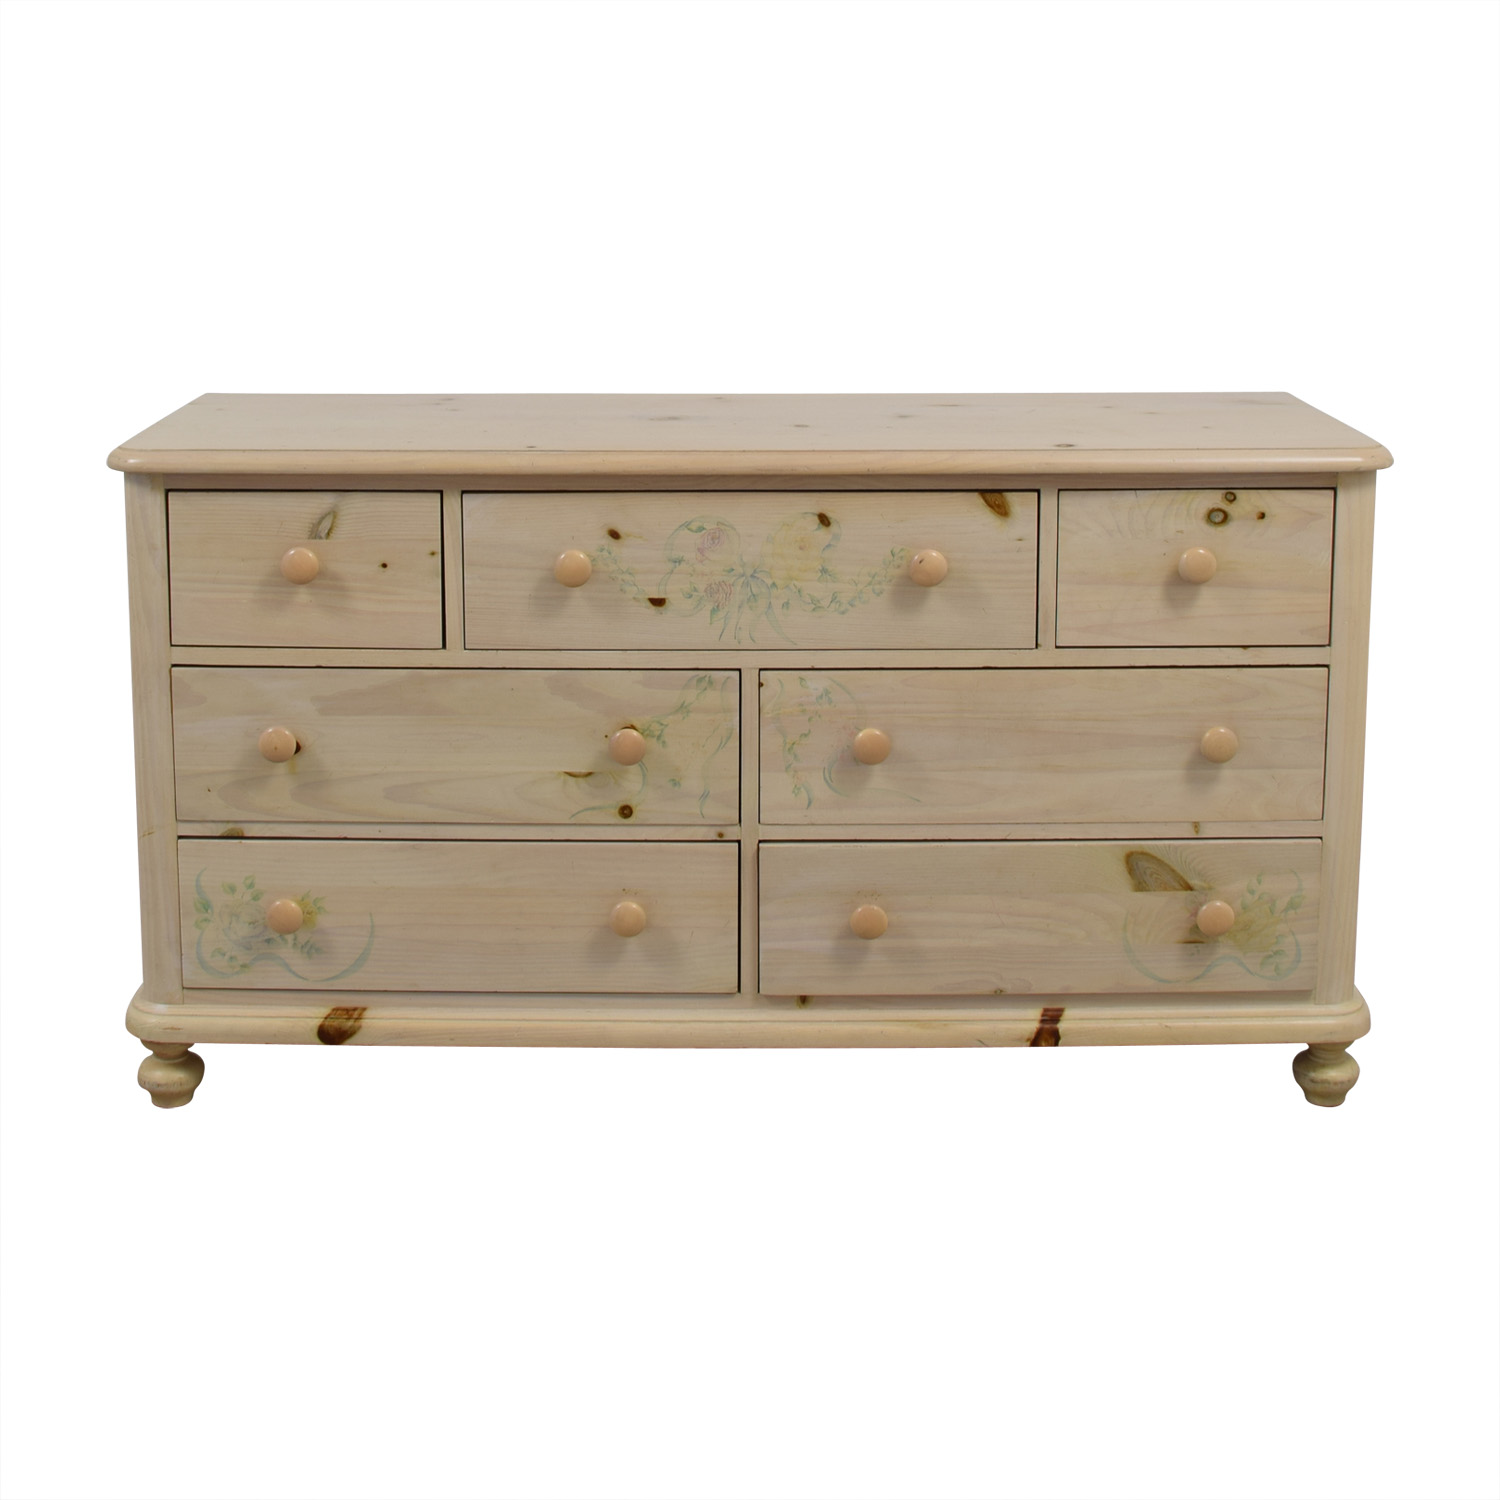 Thomasville Thomasville Natural Wood Seven-Drawer Dresser dimensions